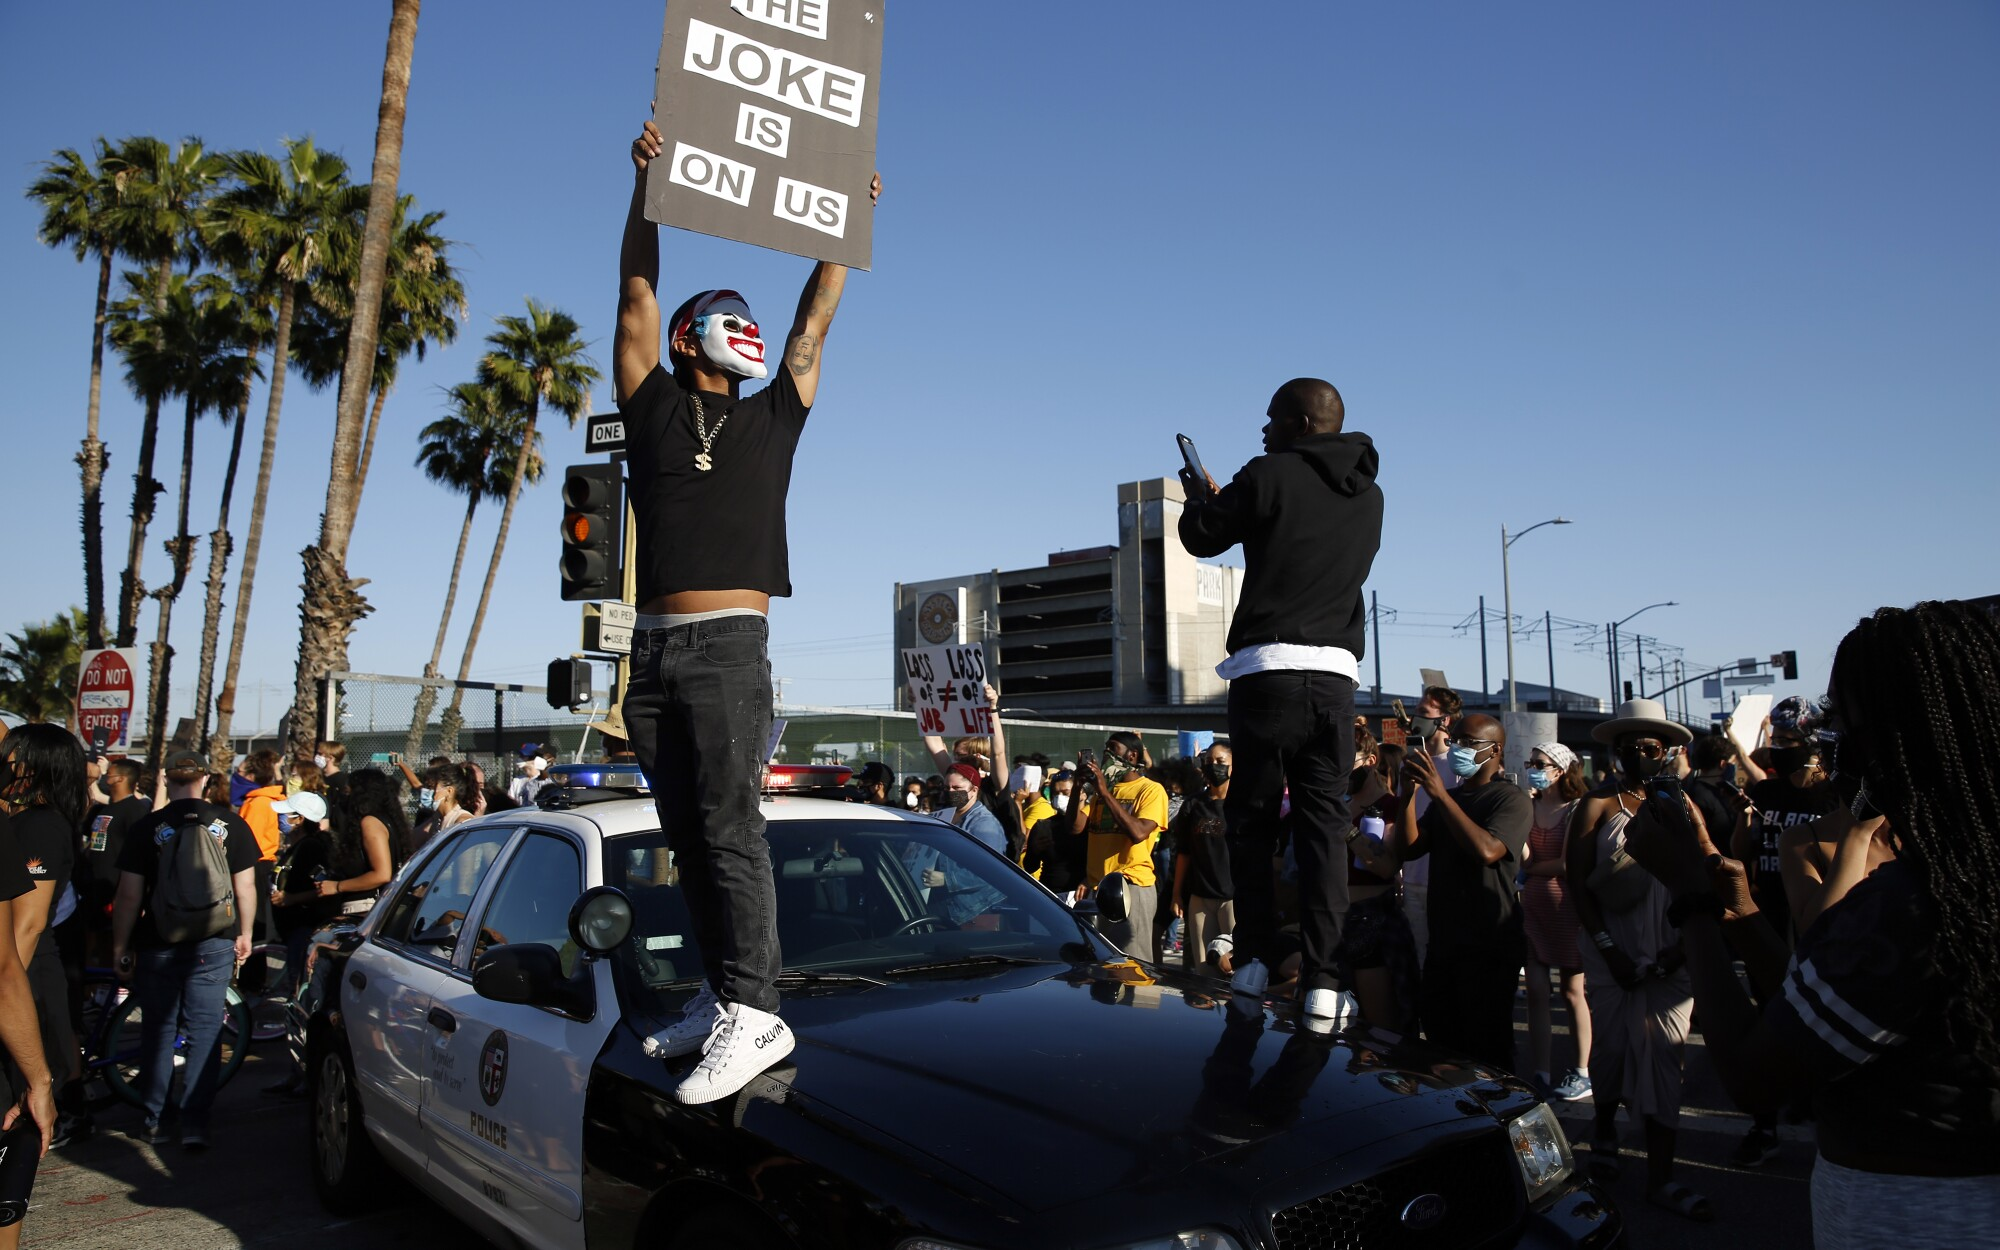 Protesters stand on a LAPD cruiser during a Black Lives Matter protest in downtown Los Angeles